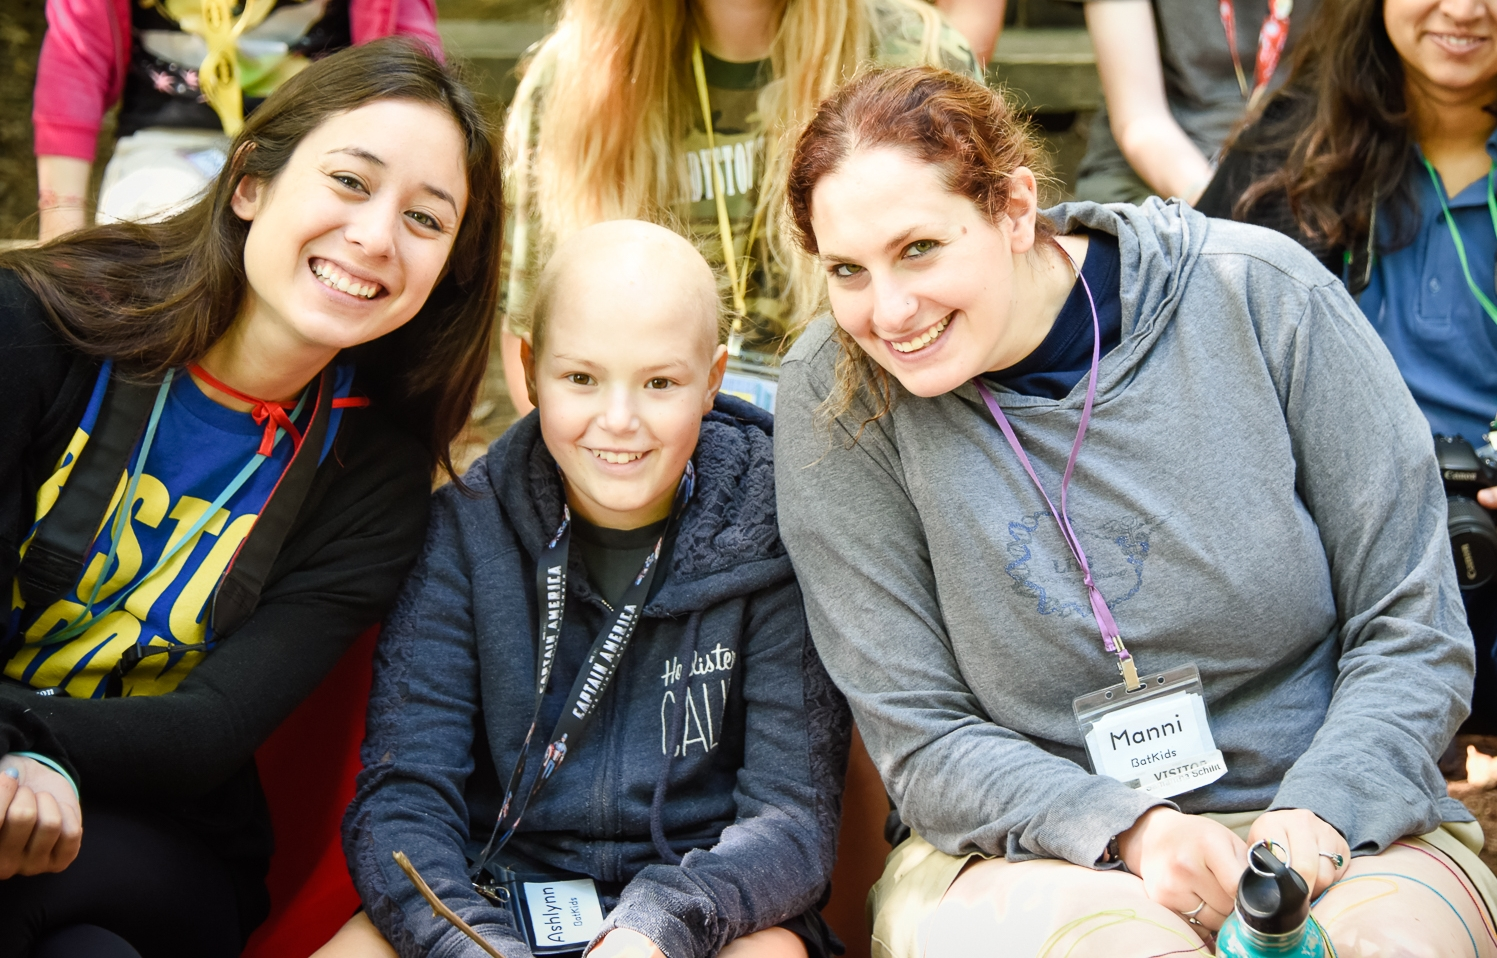 Hull (center), surrounded by camp volunteers Alexandra Mullaney (left) and Samantha Schilit (right). Photo provided by Christian Pleva Images.